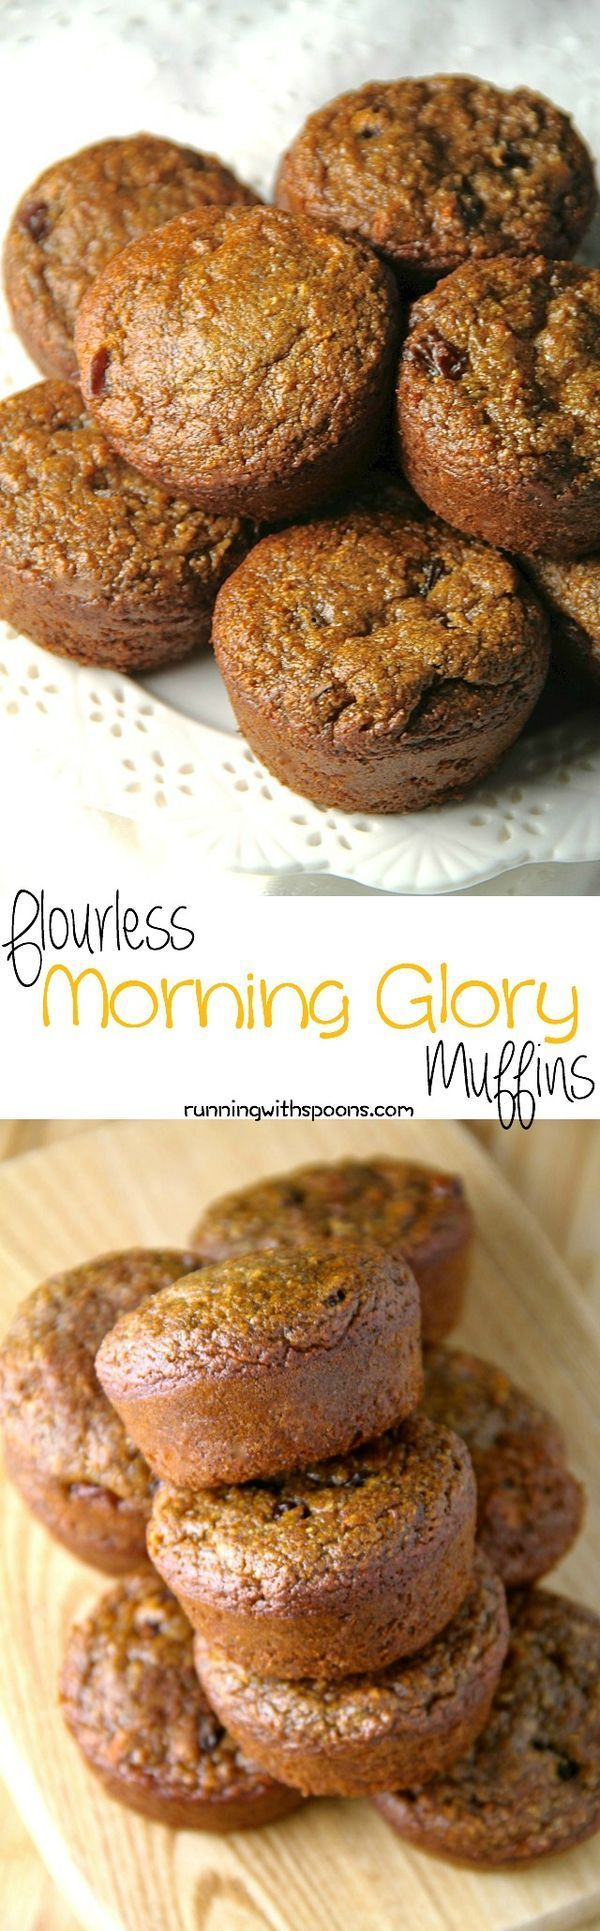 These delicious Flourless Morning Glory Muffins are gluten-free, refined sugar-free, dairy-free, oil-free and whipped up in the blender in under 5 minutes flat! || runningwithspoons.com #glutenfree #muffins